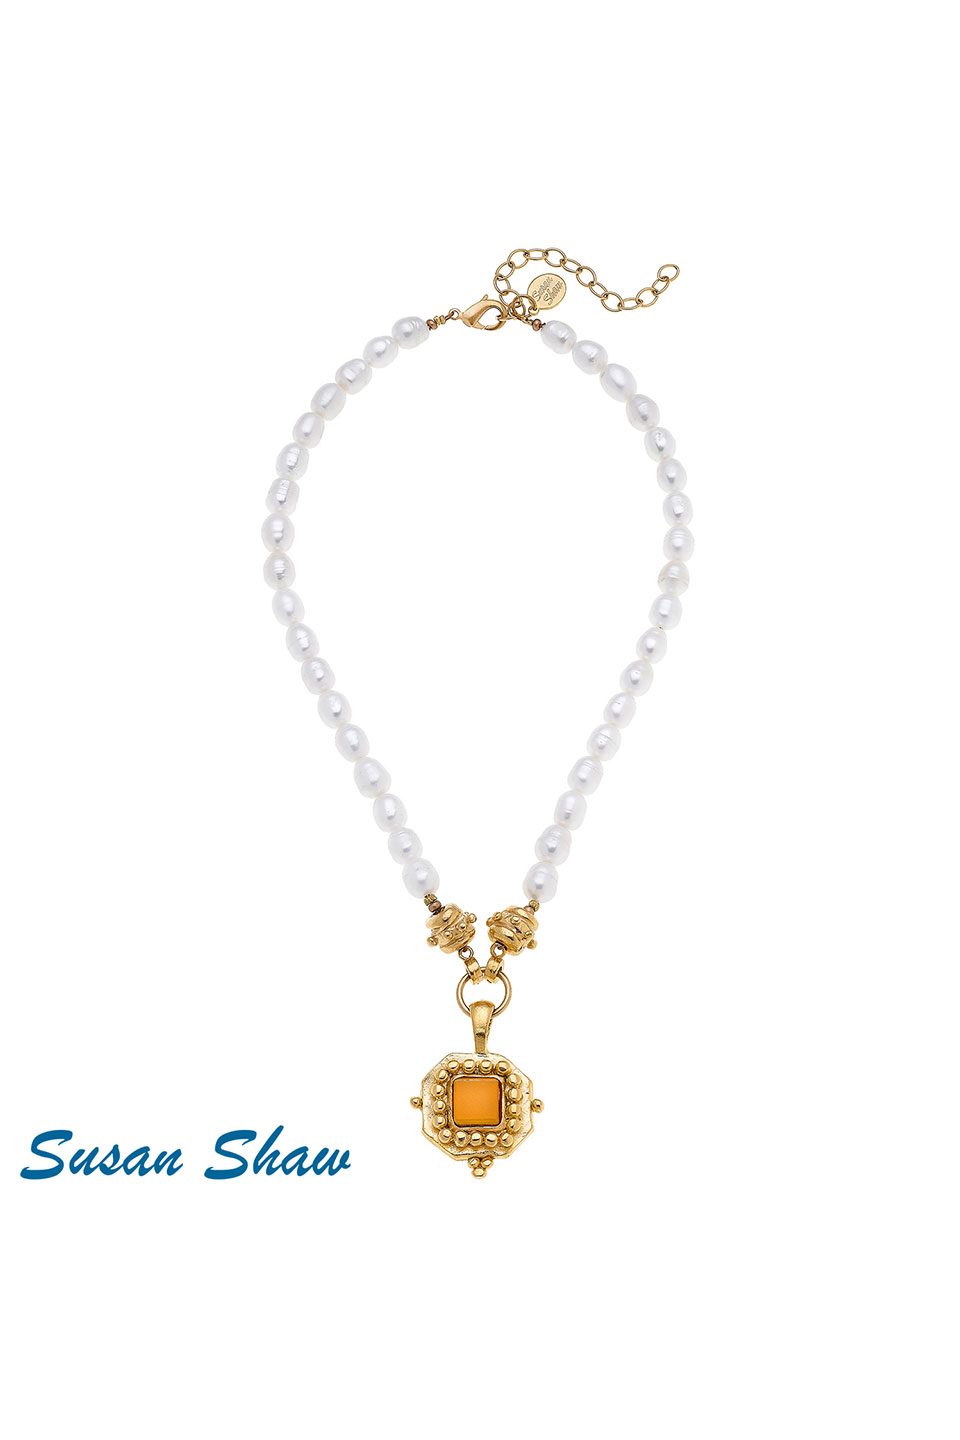 Susan Shaw Handcast Gold Square with Orange French Glass on Genuine Pearl Necklace